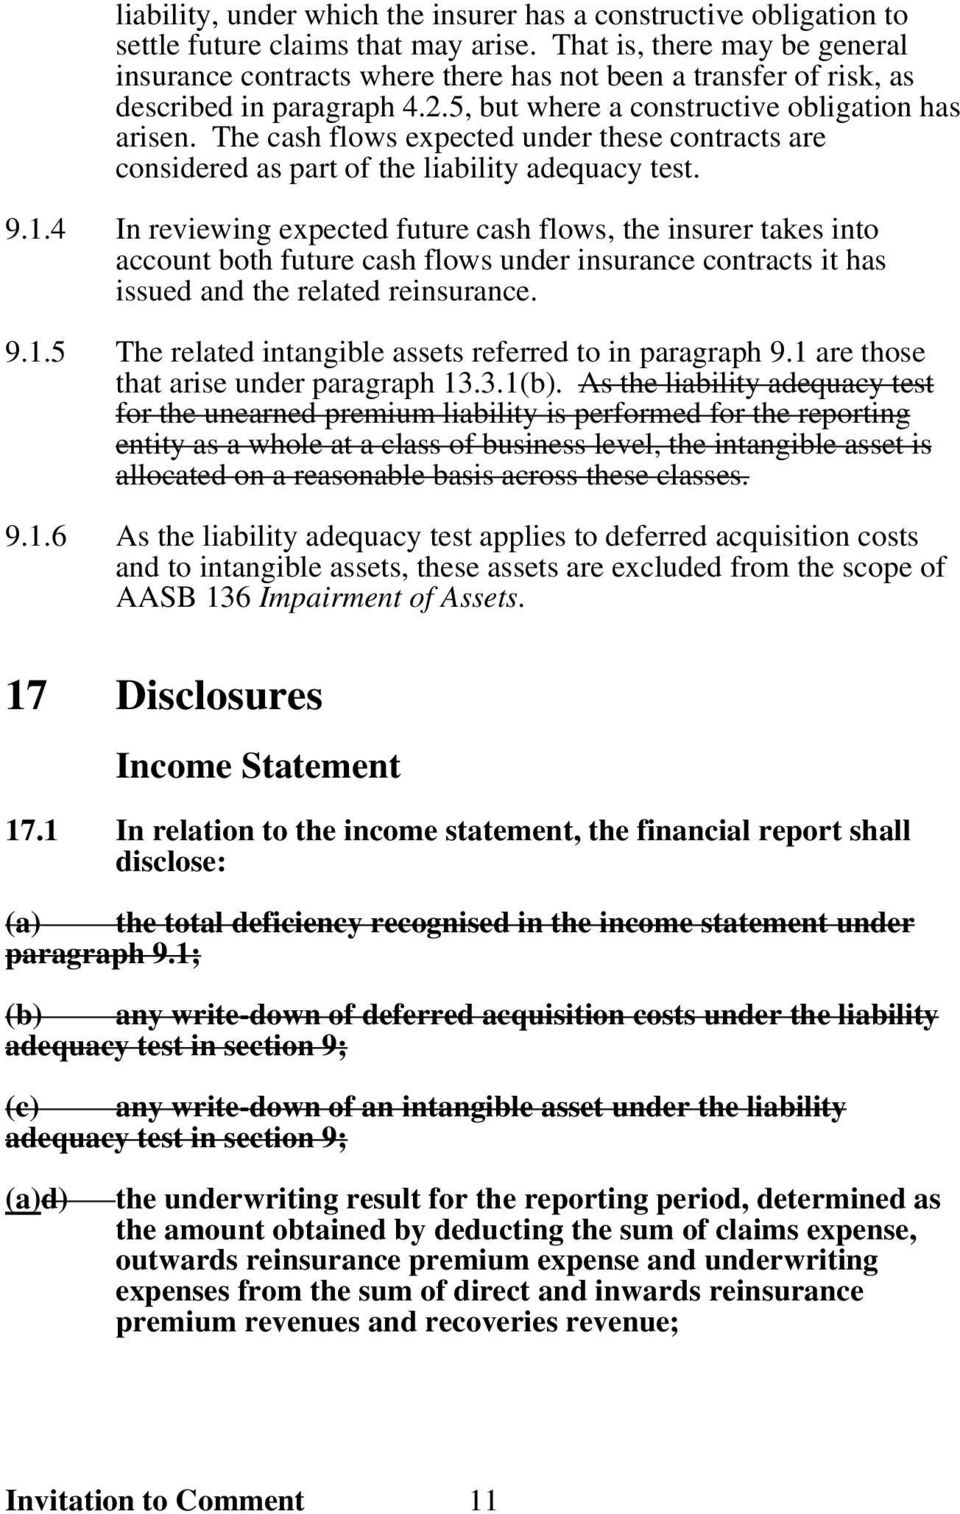 The cash flows expected under these contracts are considered as part of the liability adequacy test. 9.1.